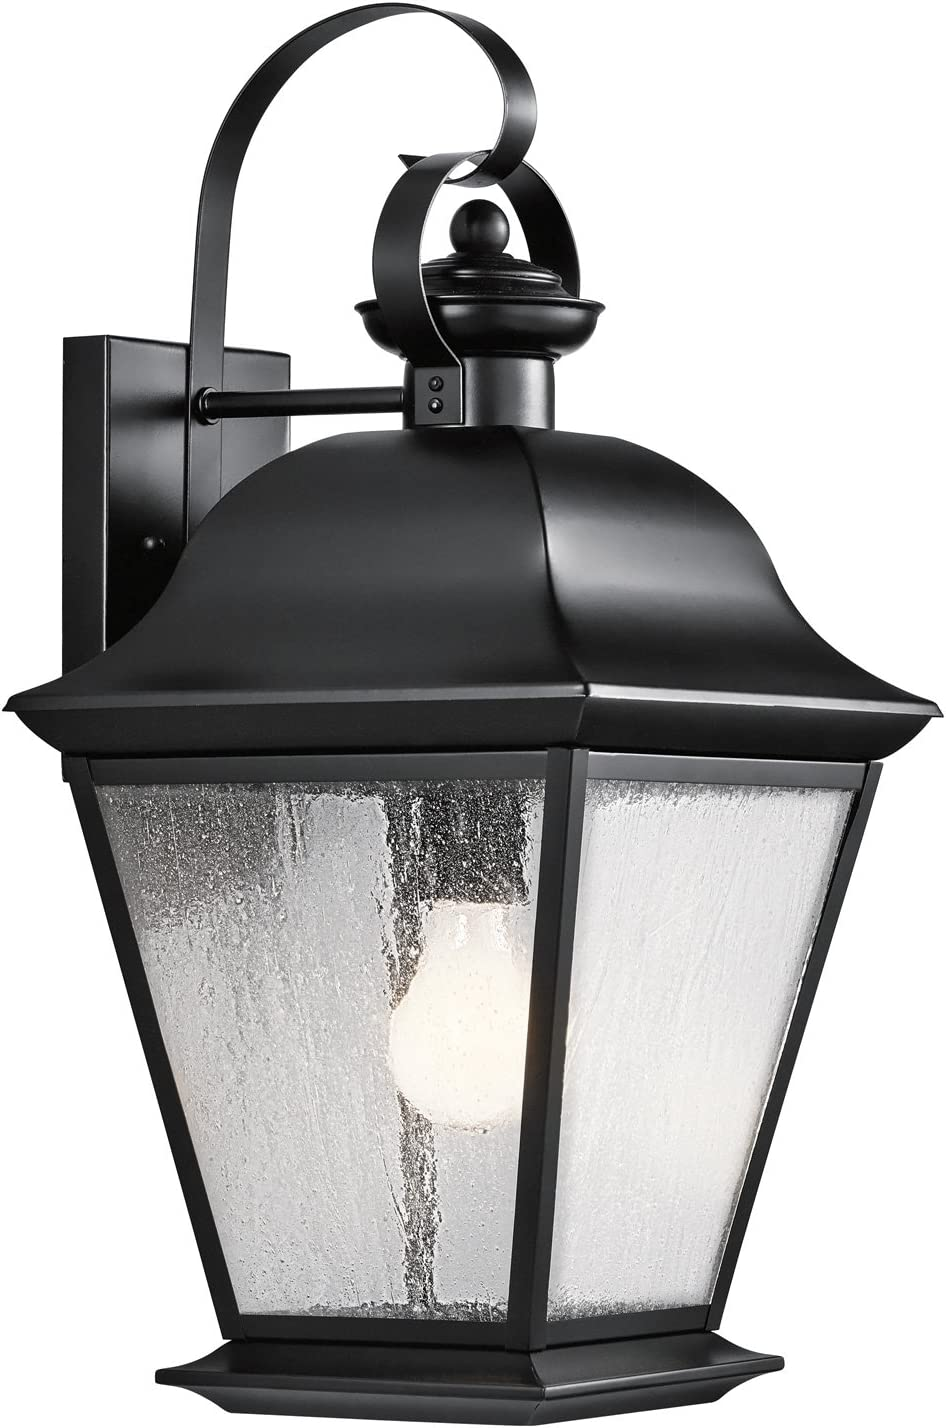 Kichler 9709BK Mount Vernon Outdoor Wall Sconce, 1 Light Incandescent 150 Watts, Black